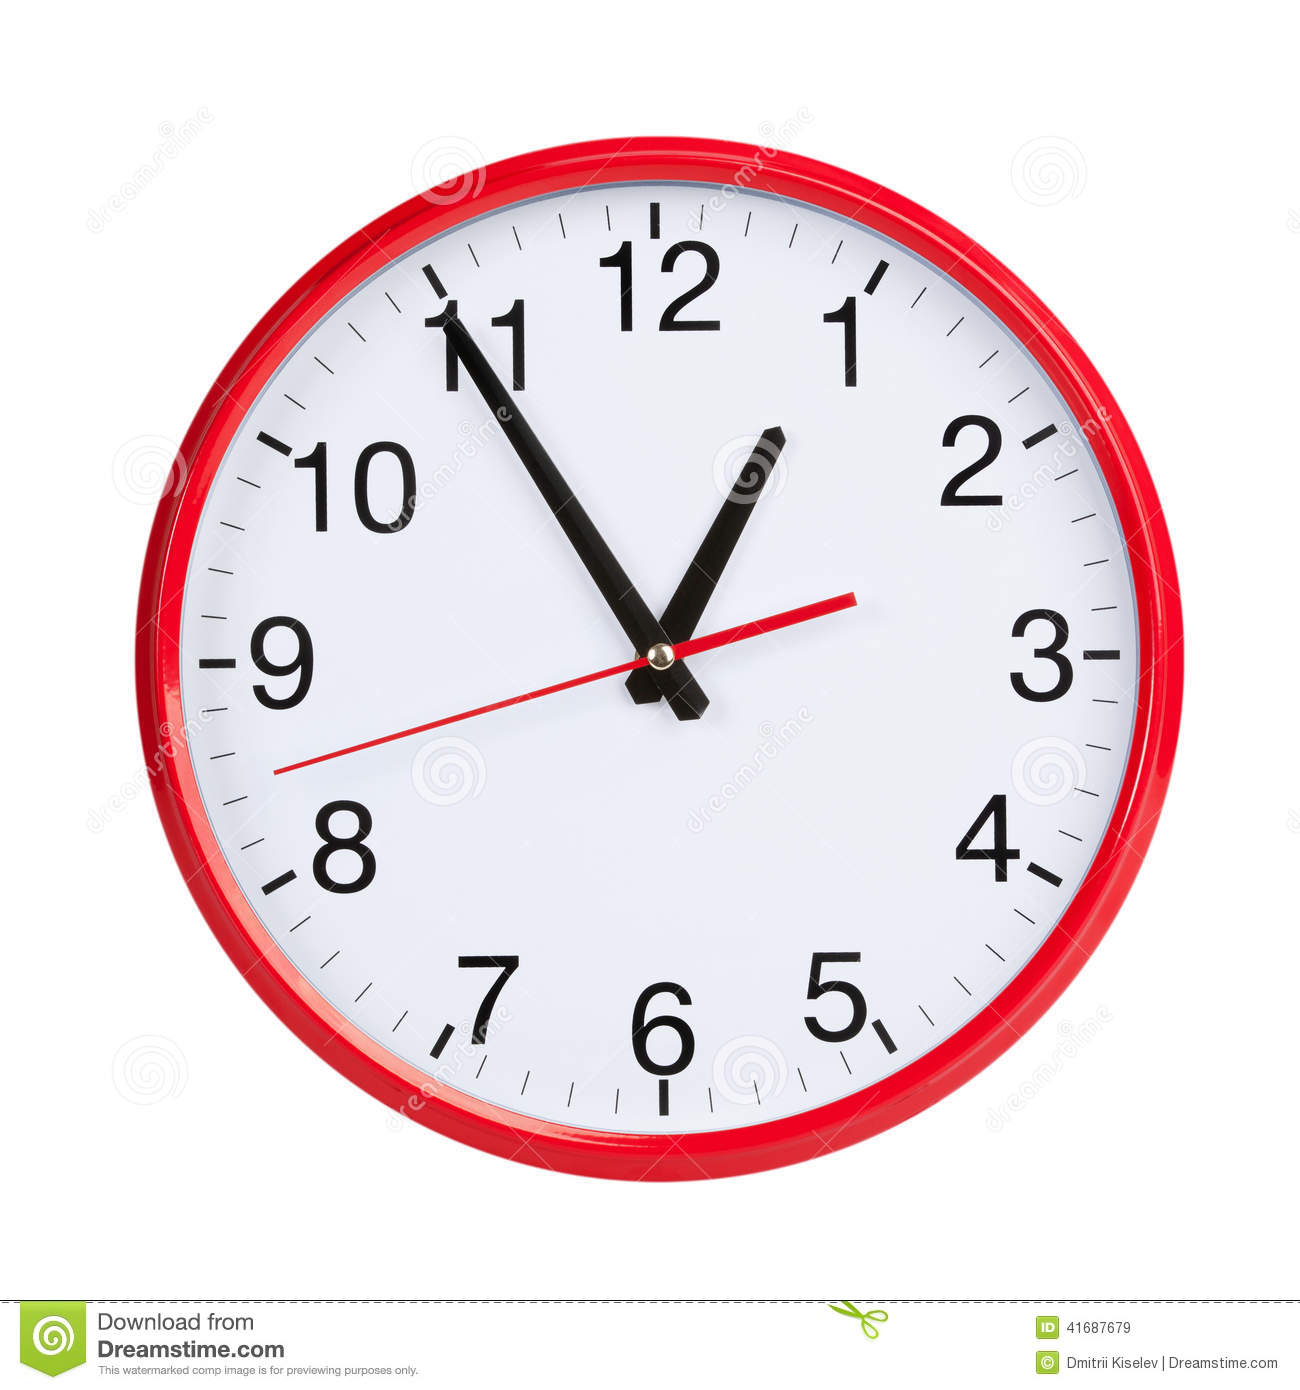 hour round clock face red 41687679